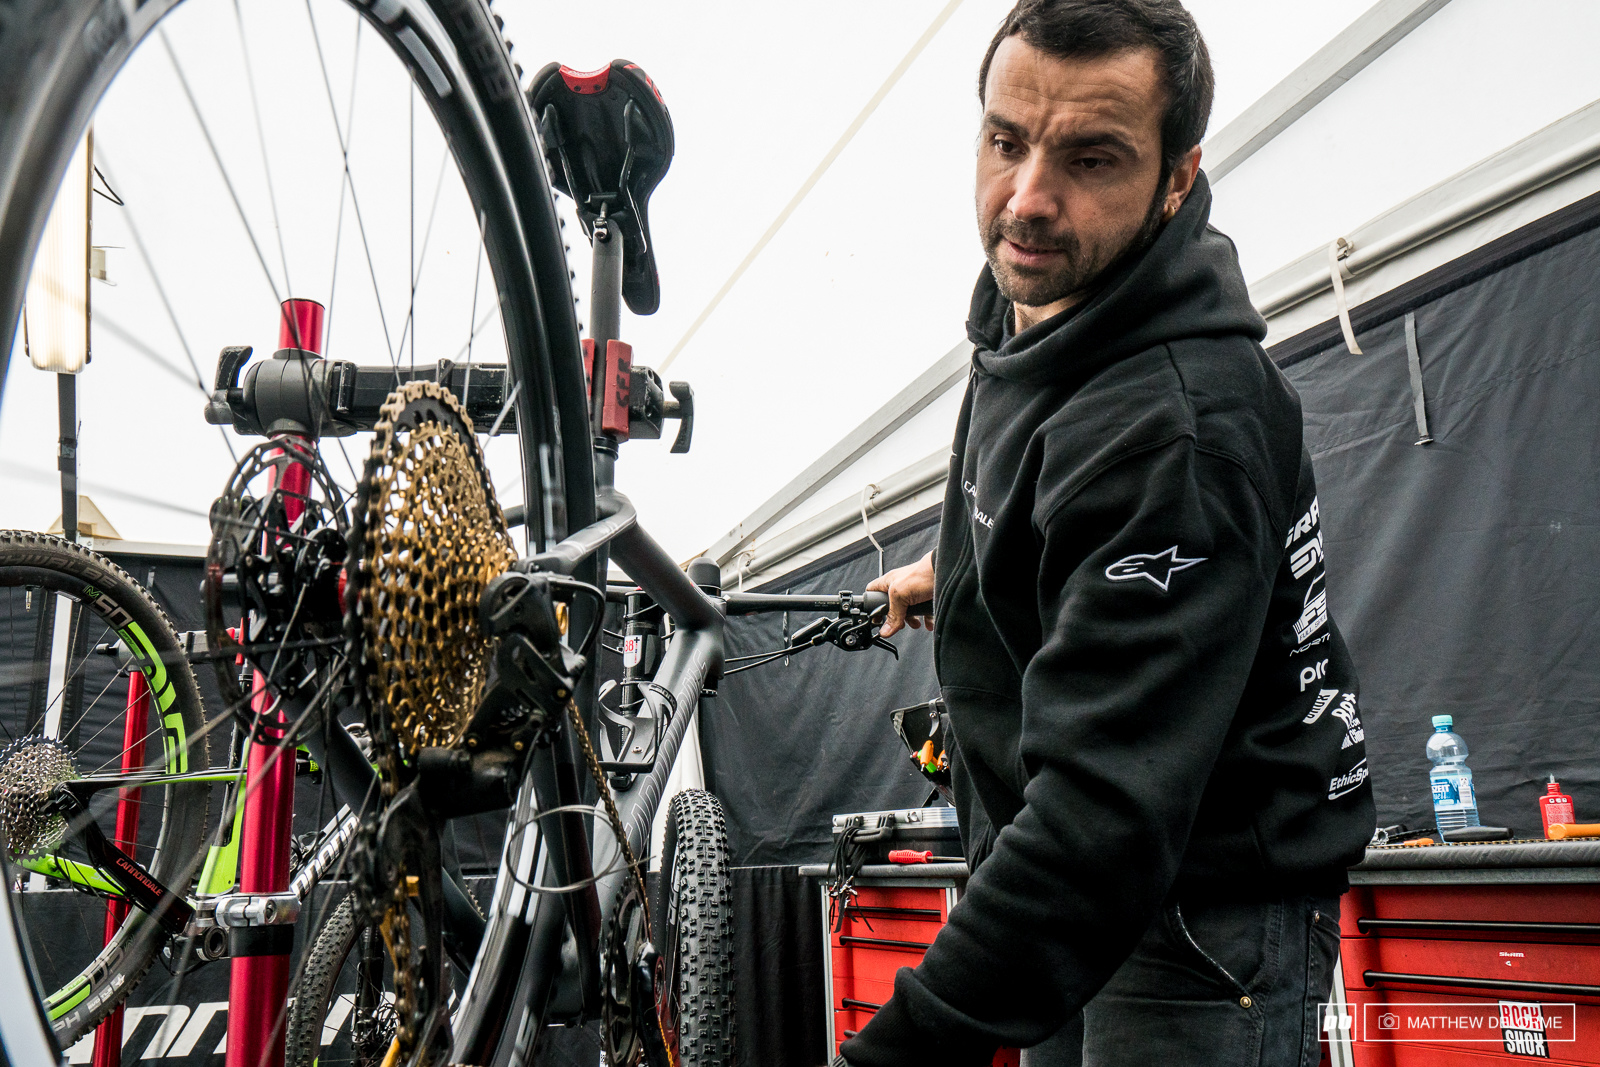 Giacomo makes the final adjustments to the SRAM Eagle group set on Manuel Fumic s bike. Eagle looks to be just the gearing for the climbs here in Albstadt.